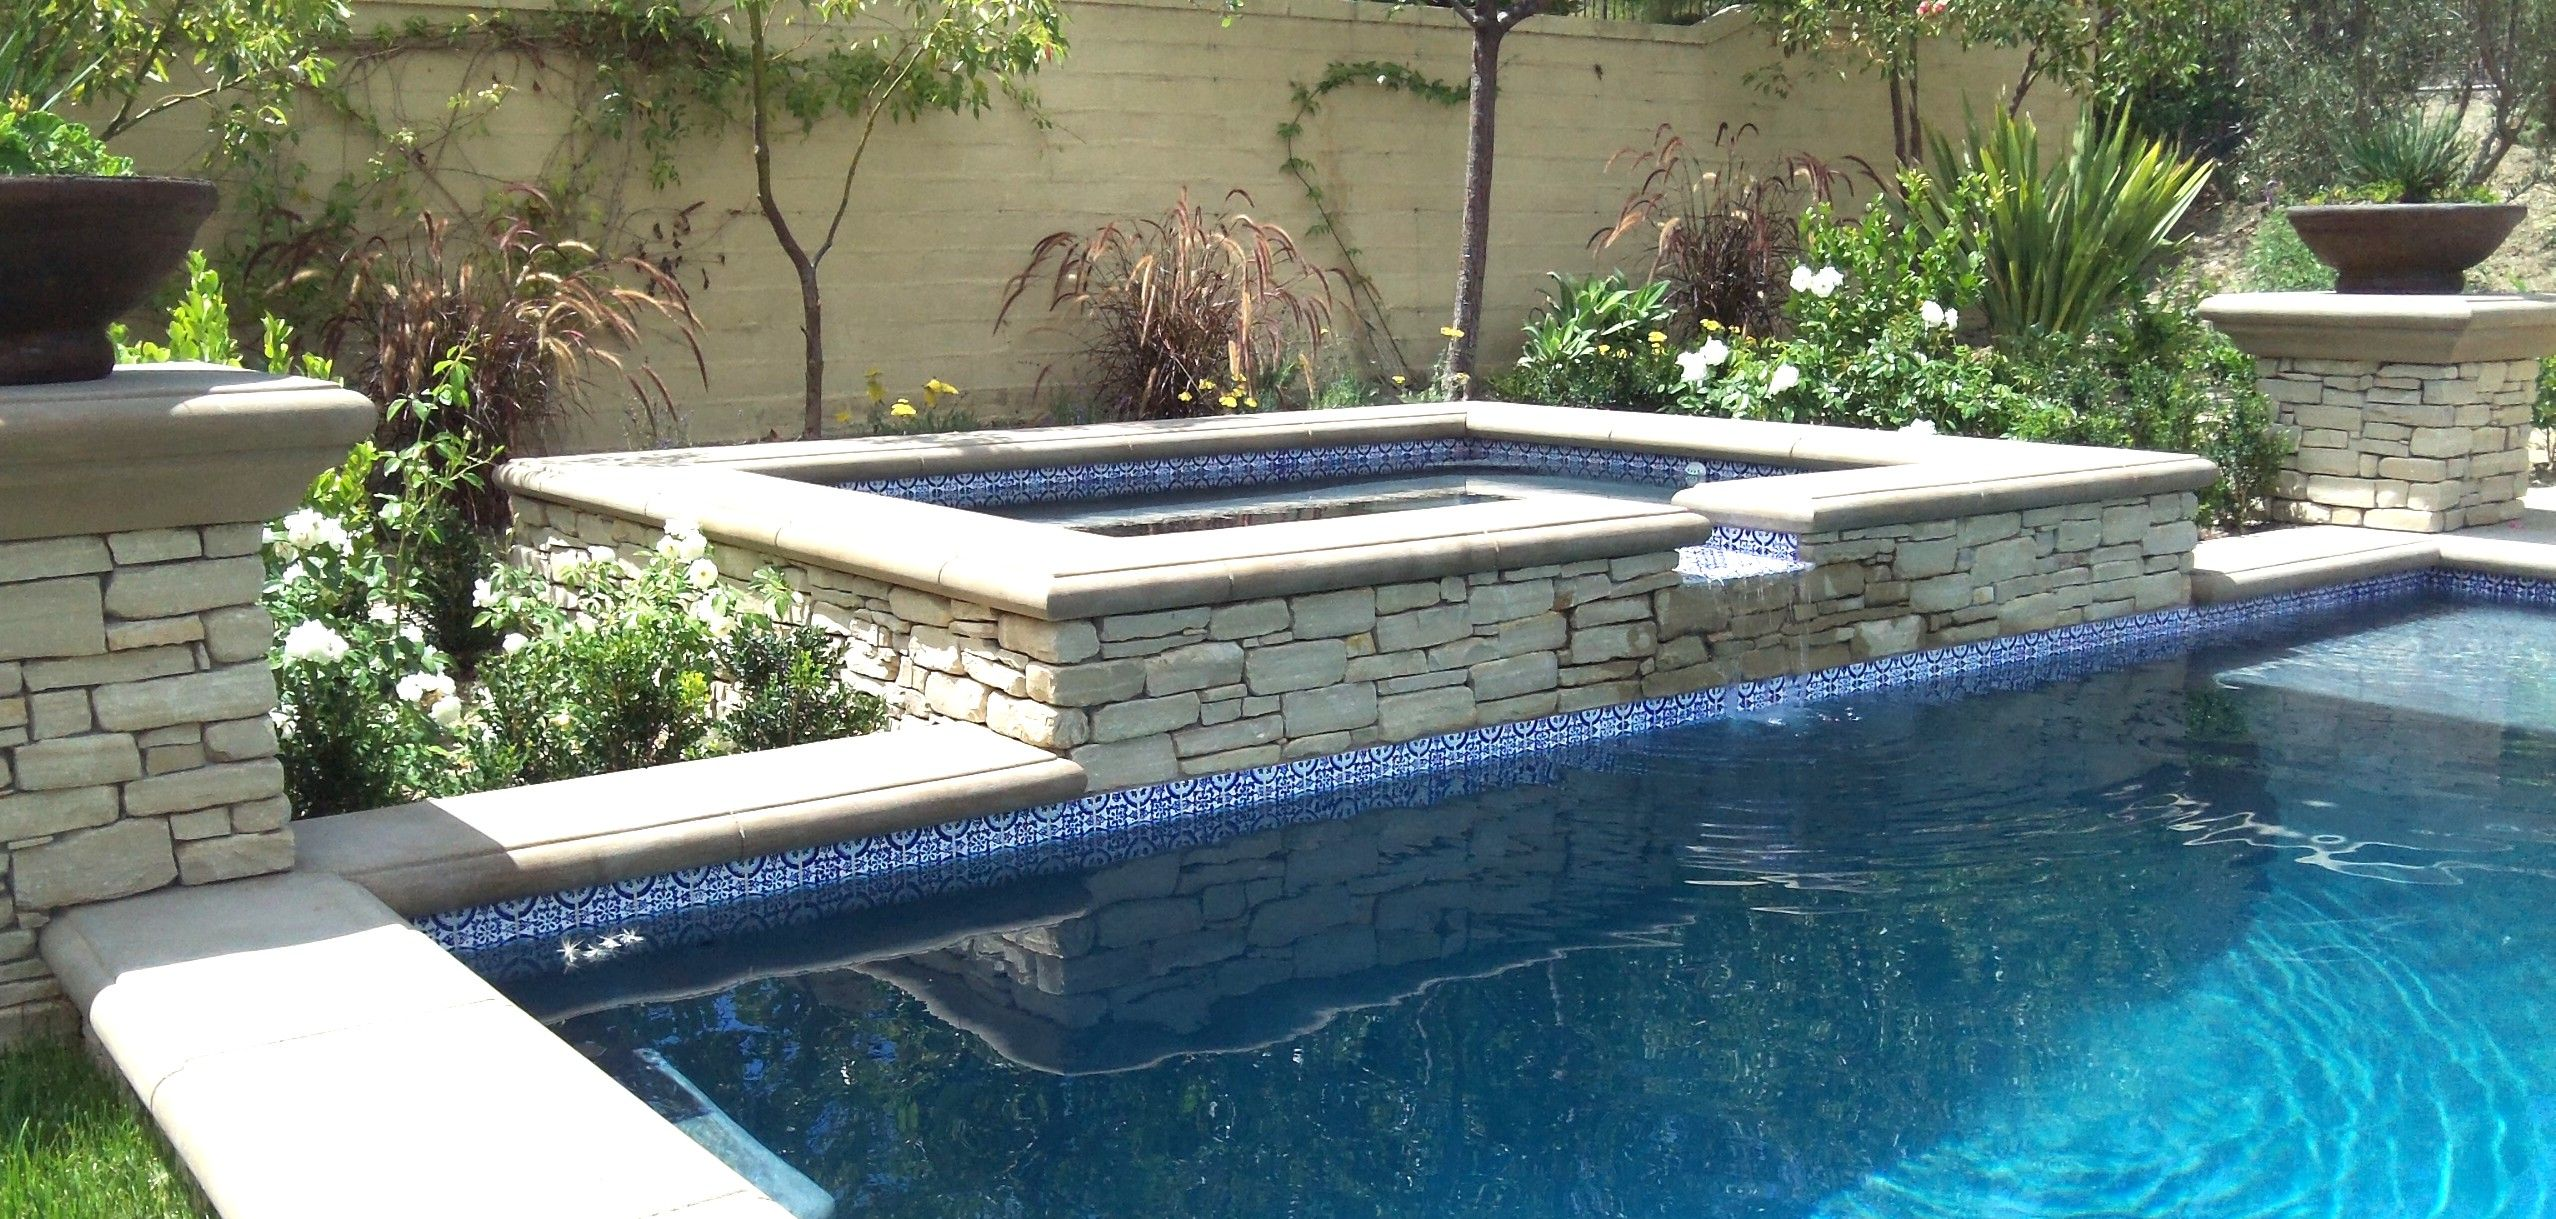 Pool tile designs pool water fountain design ideas small for Swimming pool designs and plans